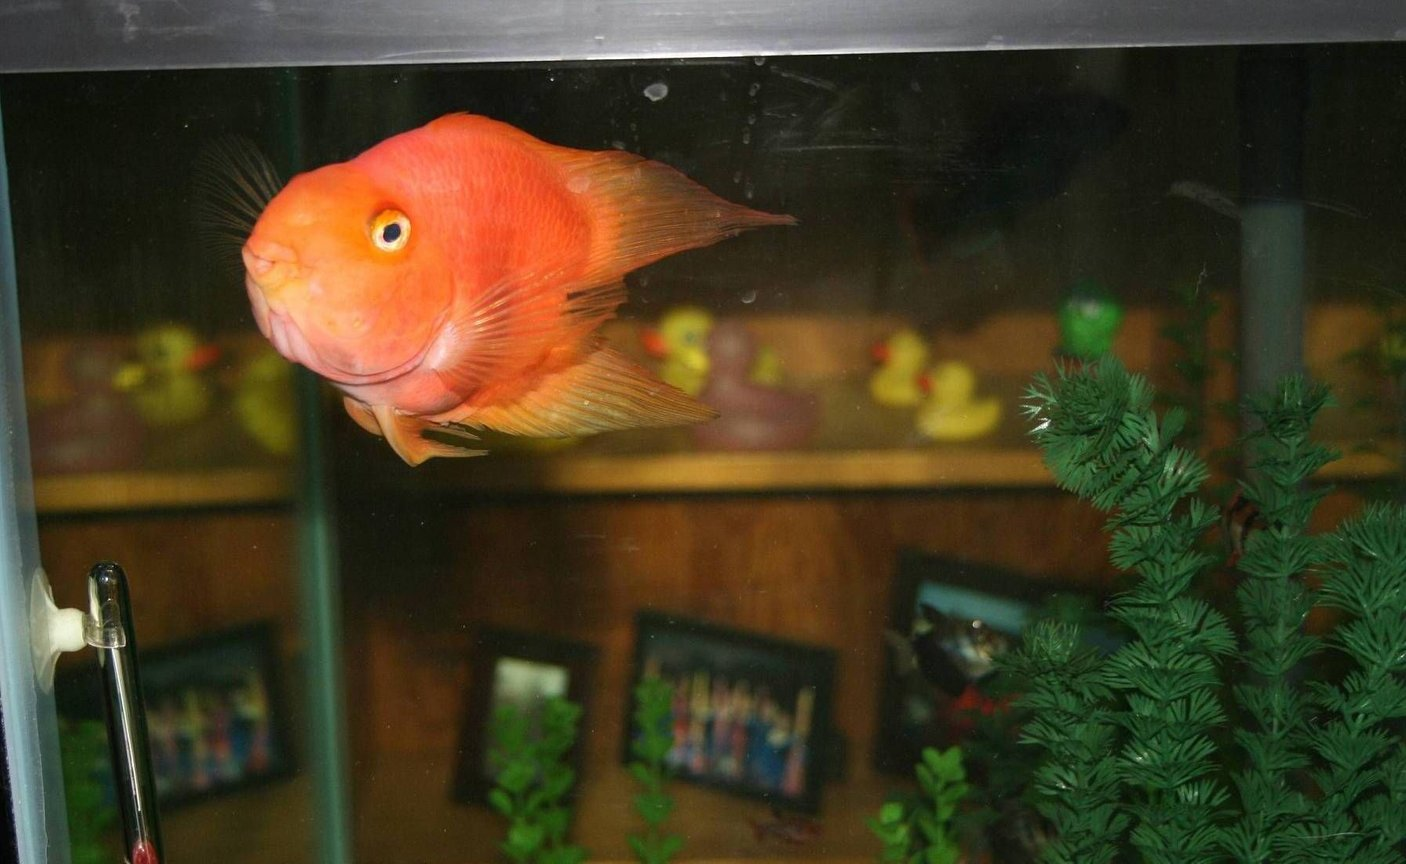 freshwater fish - heros severus x amphilophus citrinellum - blood parrot stocking in 56 gallons tank - Loui, my Heart-Shaped Parrot